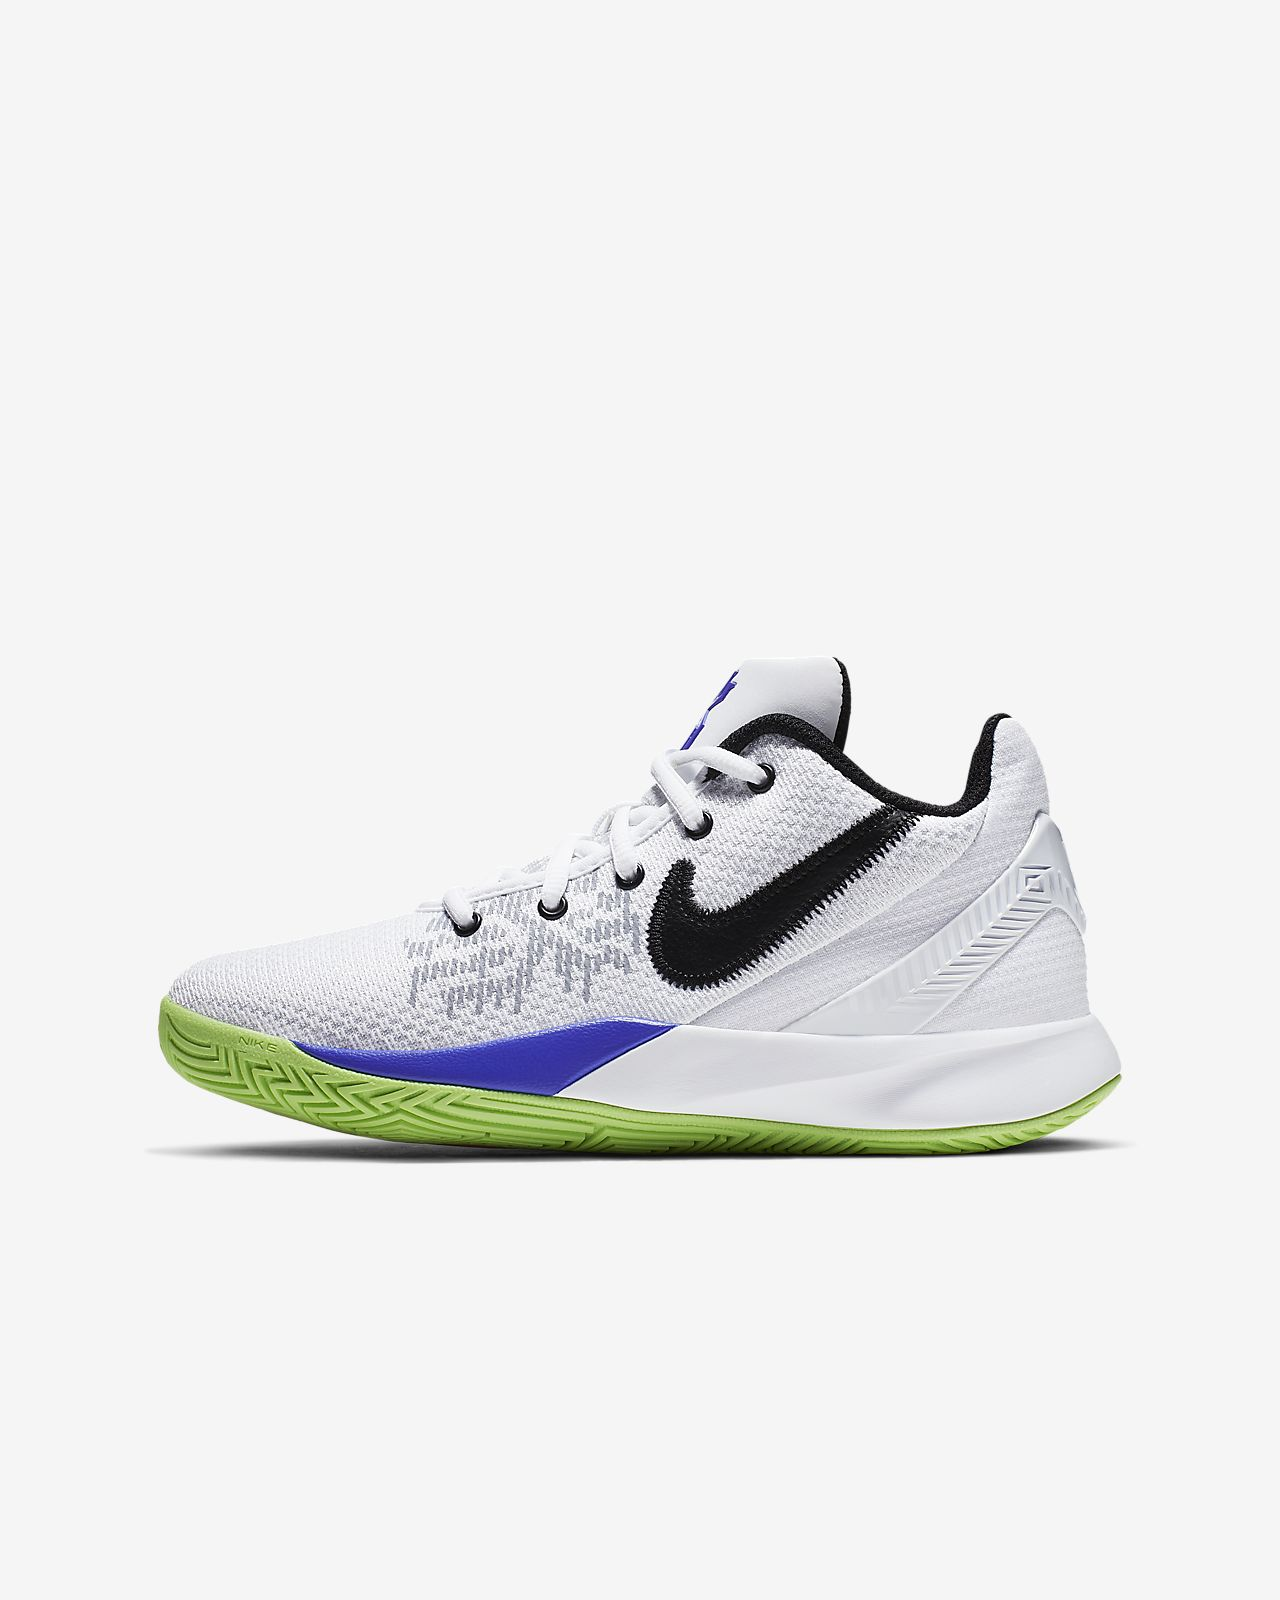 Kyrie Flytrap II Older Kids' Basketball Shoe